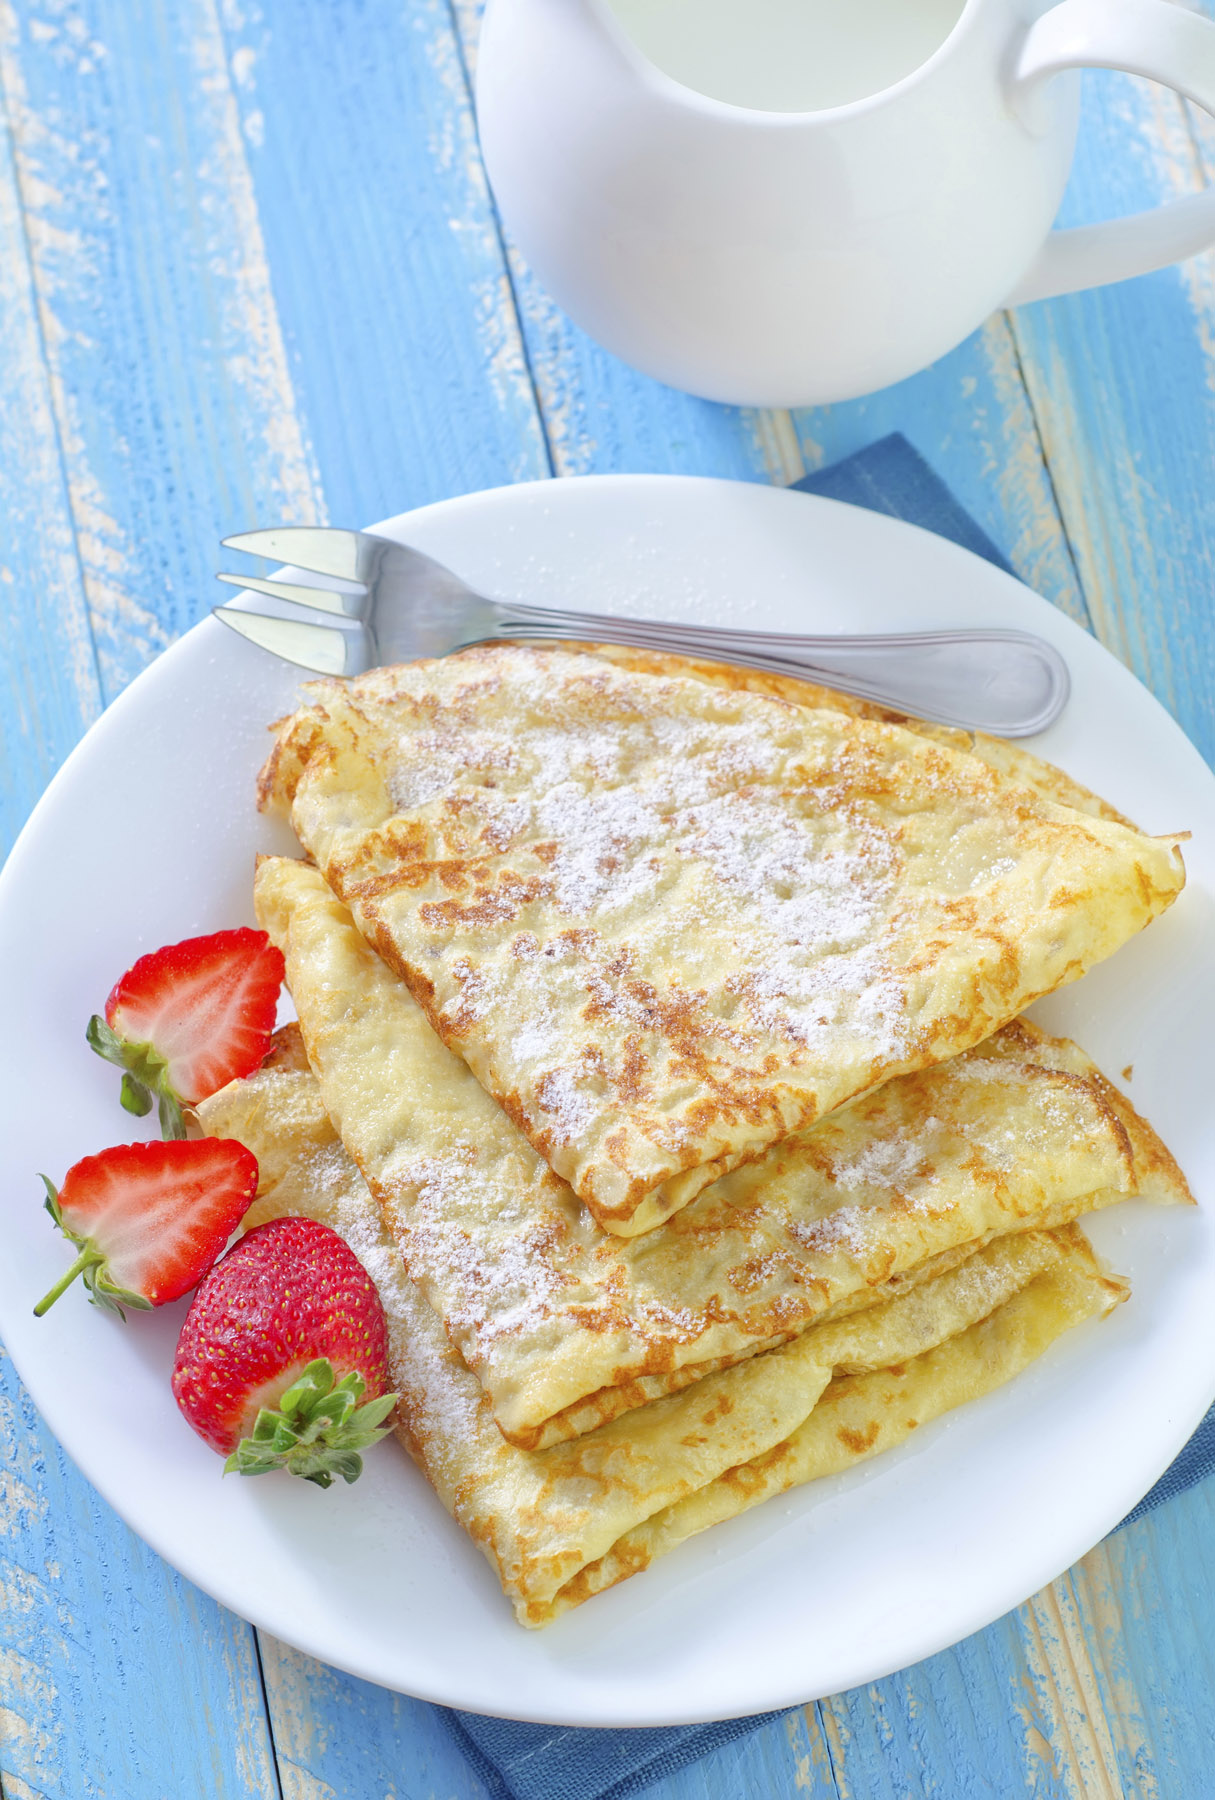 Palacinky, a delicate sweet Czech pancake filled with assorted sweet cheeses or fruit. (tycoon751/iStock/Thinkstock)